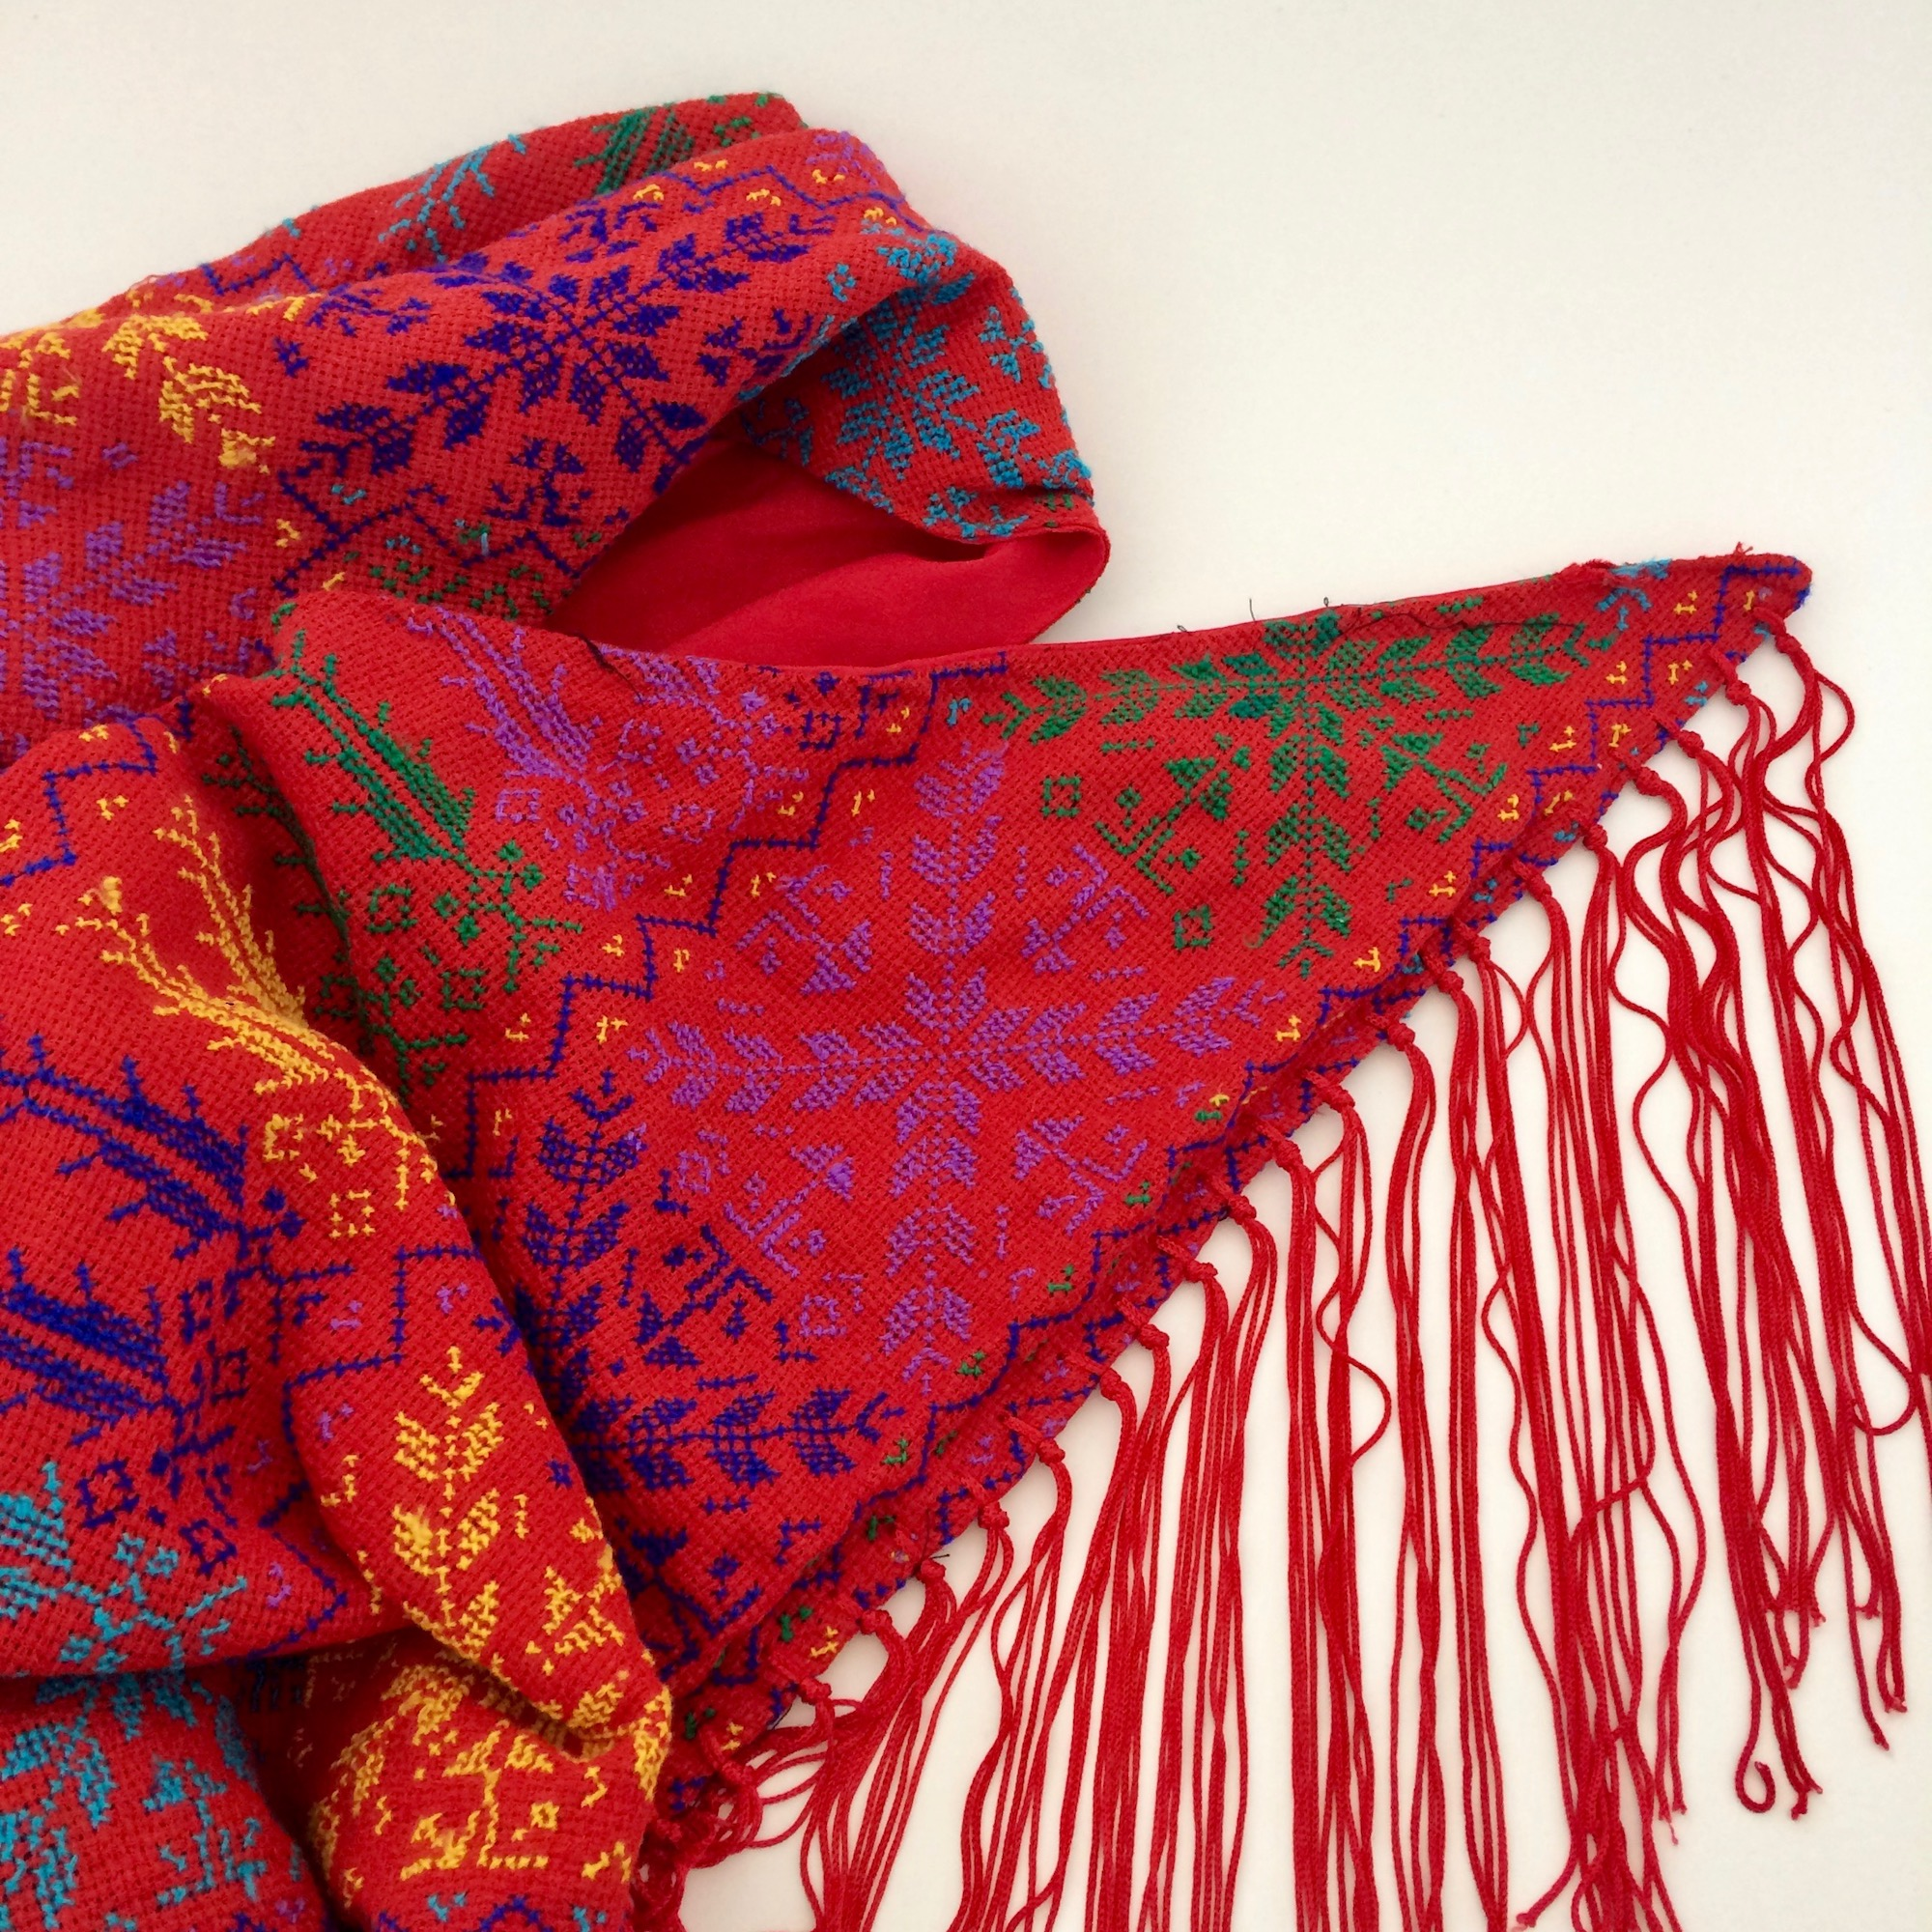 Bedouin Hand-embroidered Triangular Red Fringed Shawl